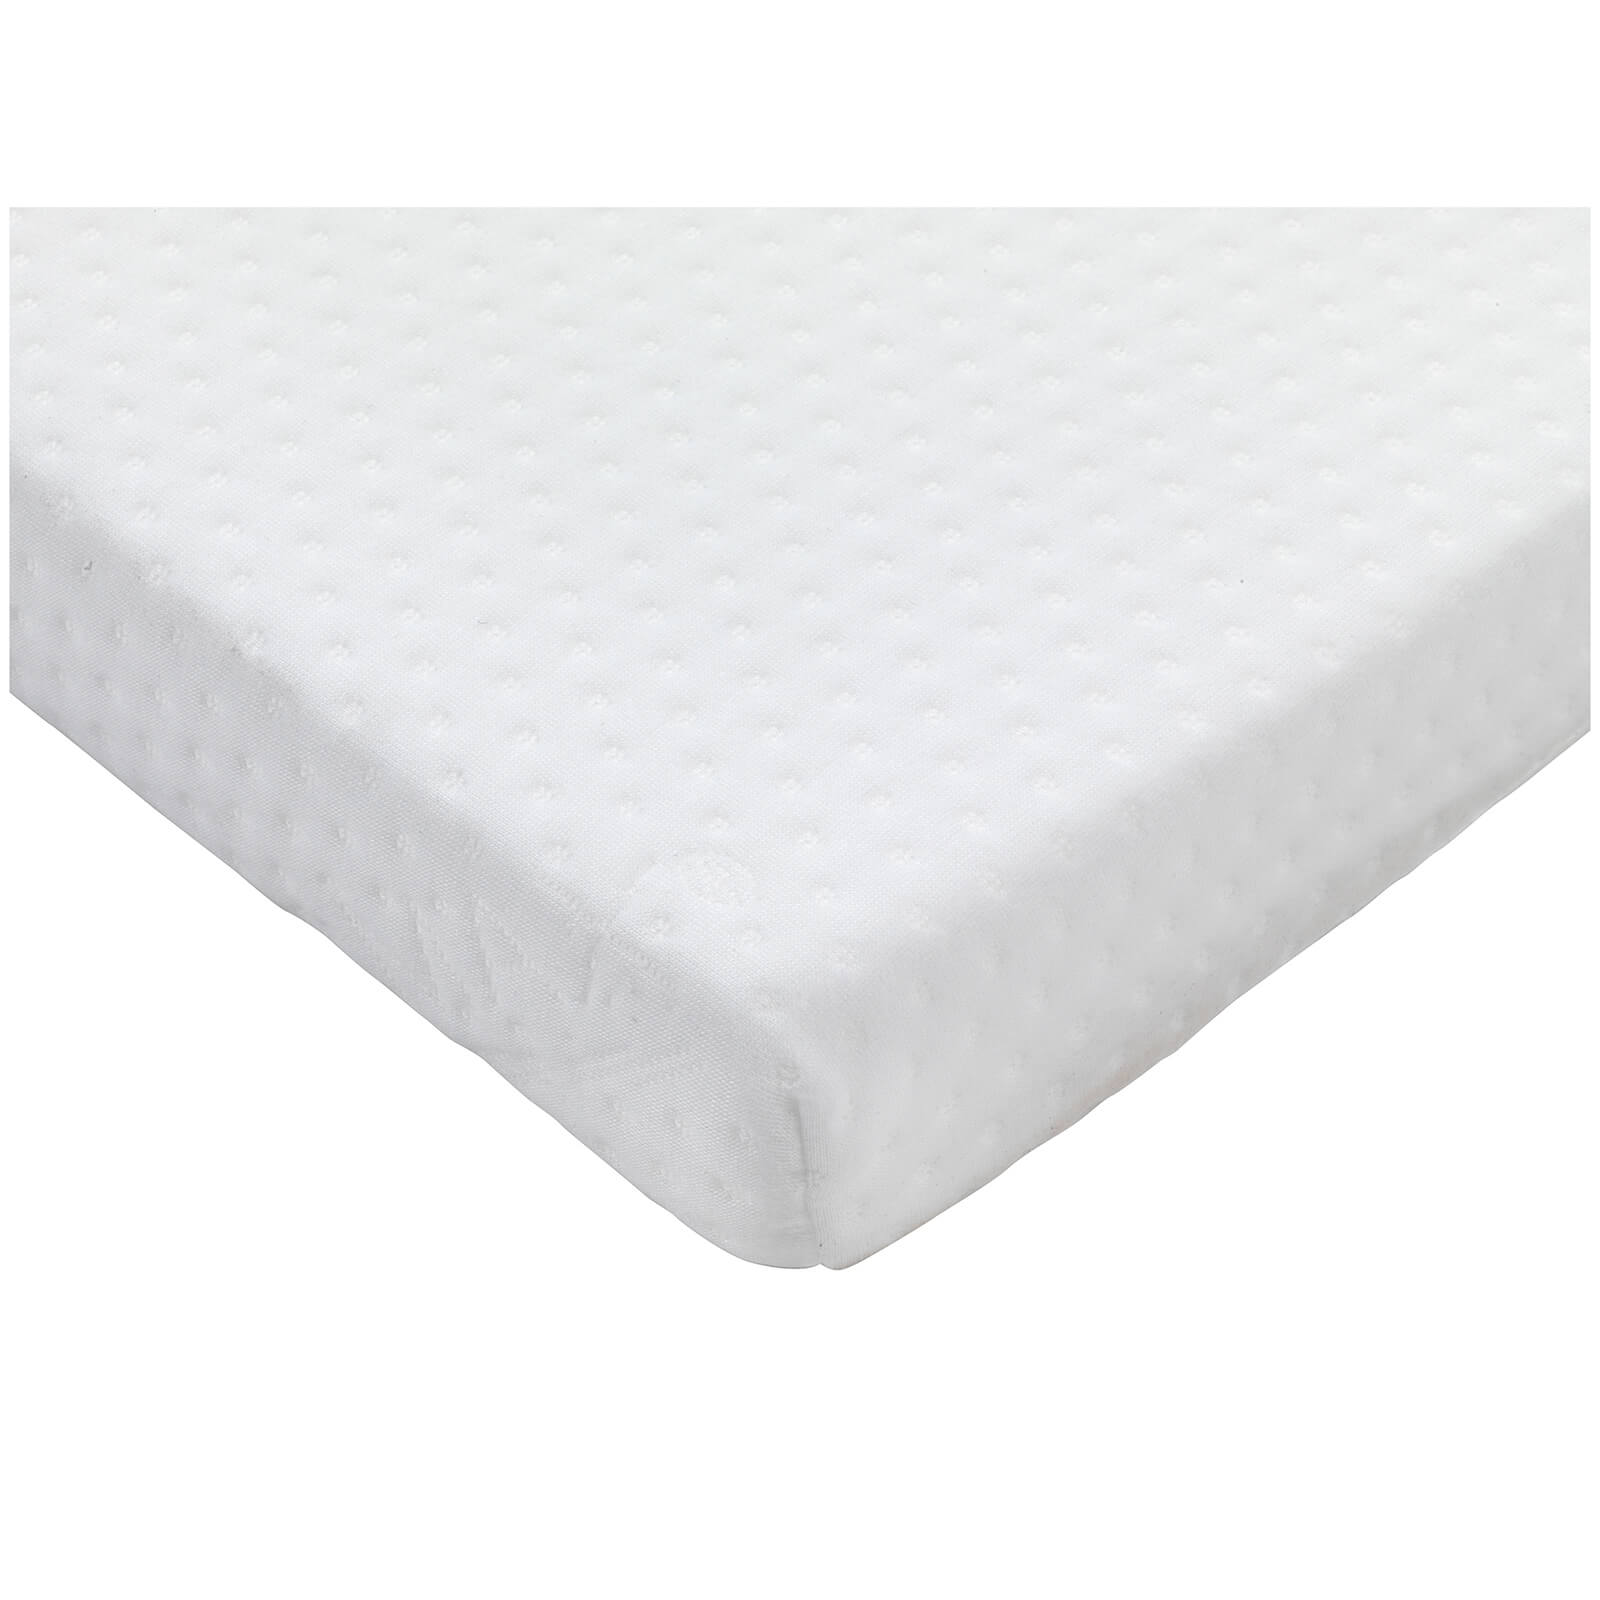 HoMedics 6cm Mattress Topper - Double